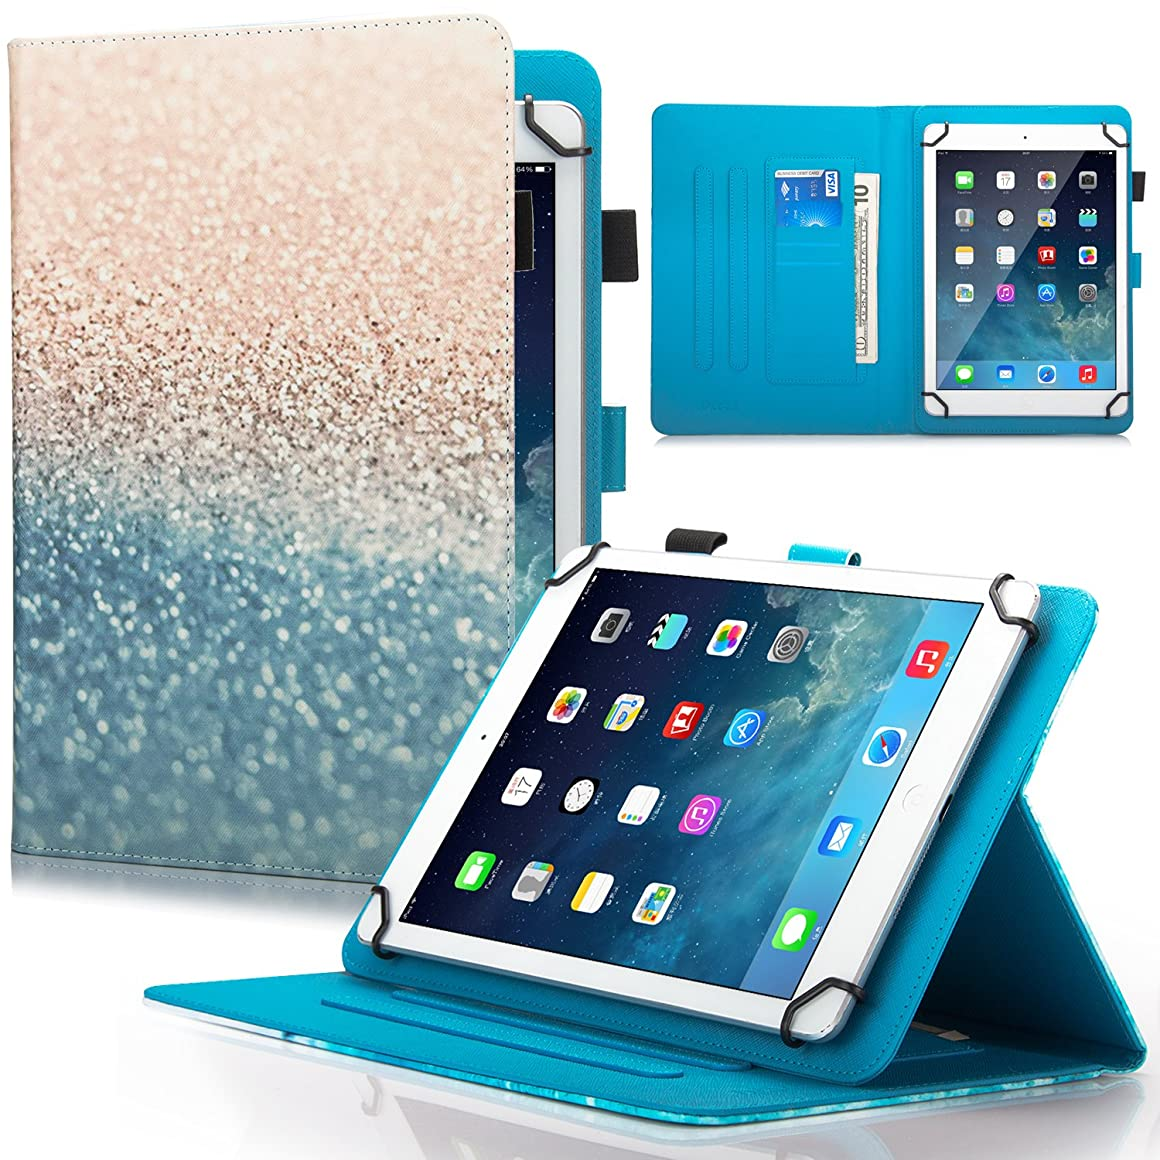 Dteck Universal Case for 6.5-7.5 inch Tablet, PU Leather Folio Protective Cover with Multi-Angle Stand Magnetic Closure Card Slot Wallet Case for 6.5-7.5 inch iPad Android Windows Tablet,Beach Sand